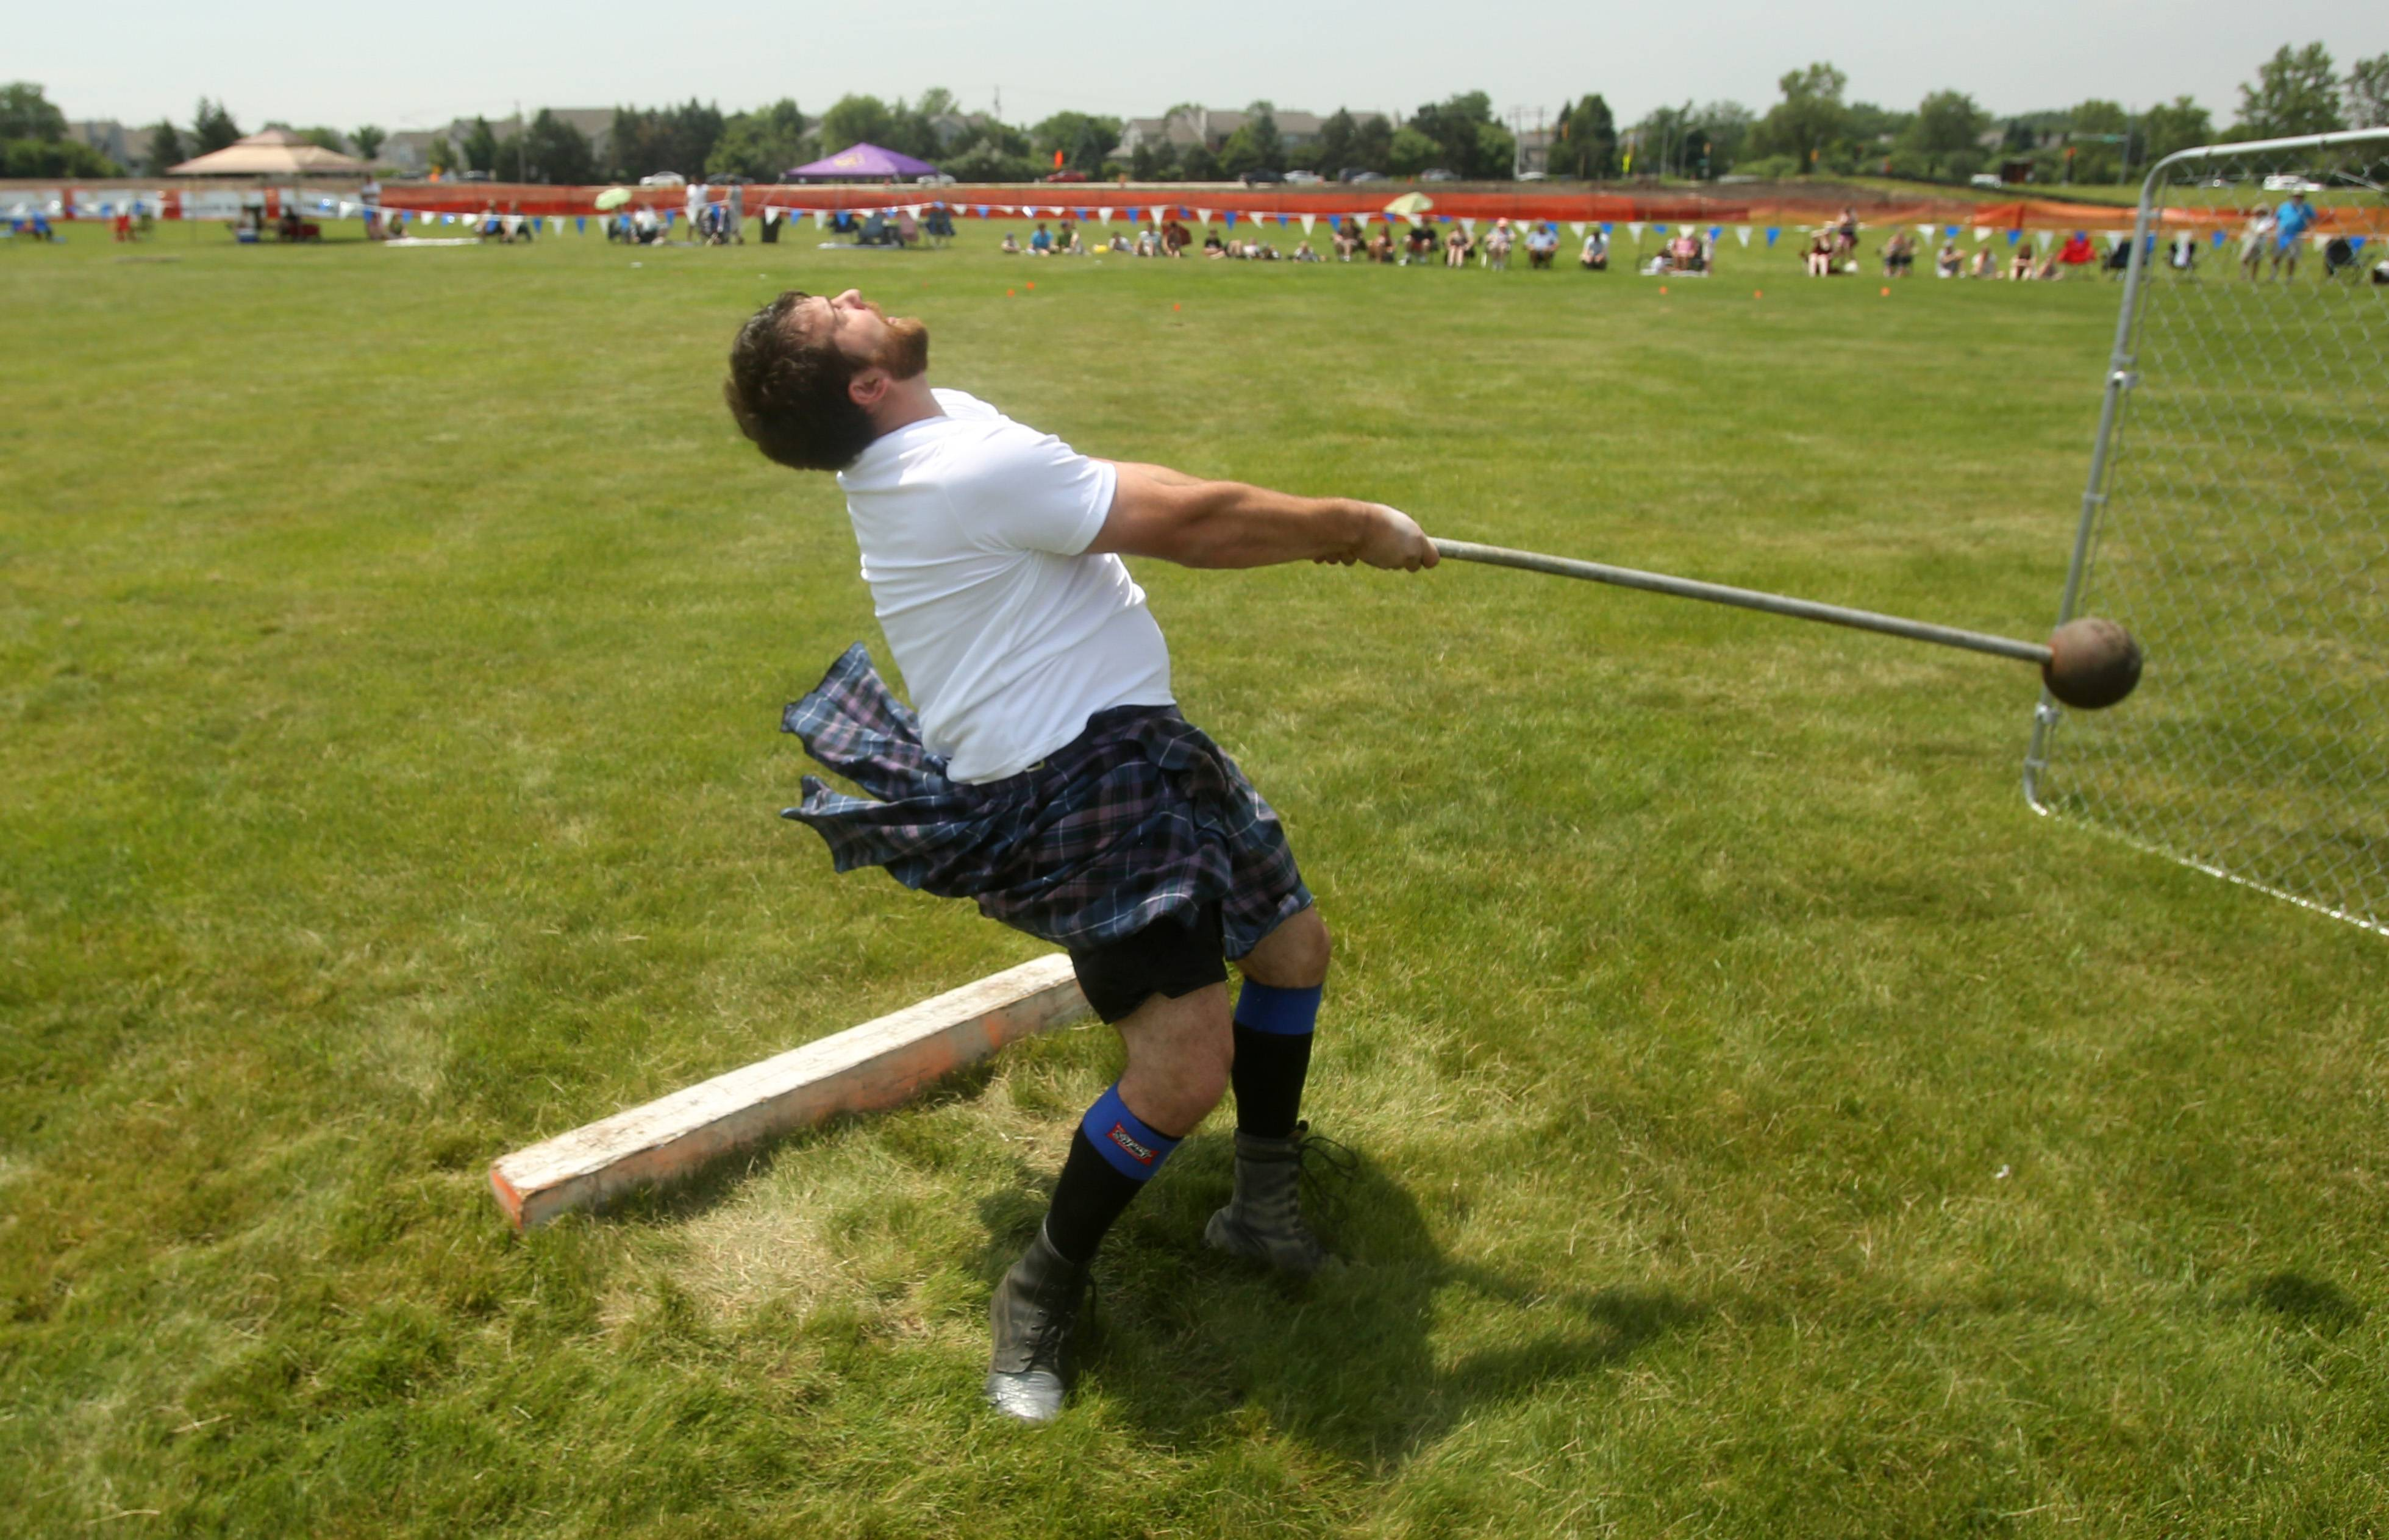 Nathan Burchett of Mason City, Iowa, competes in the 22-pound hammer throw during the Scottish Festival and Highland Games at Hamilton Lakes in Itasca.